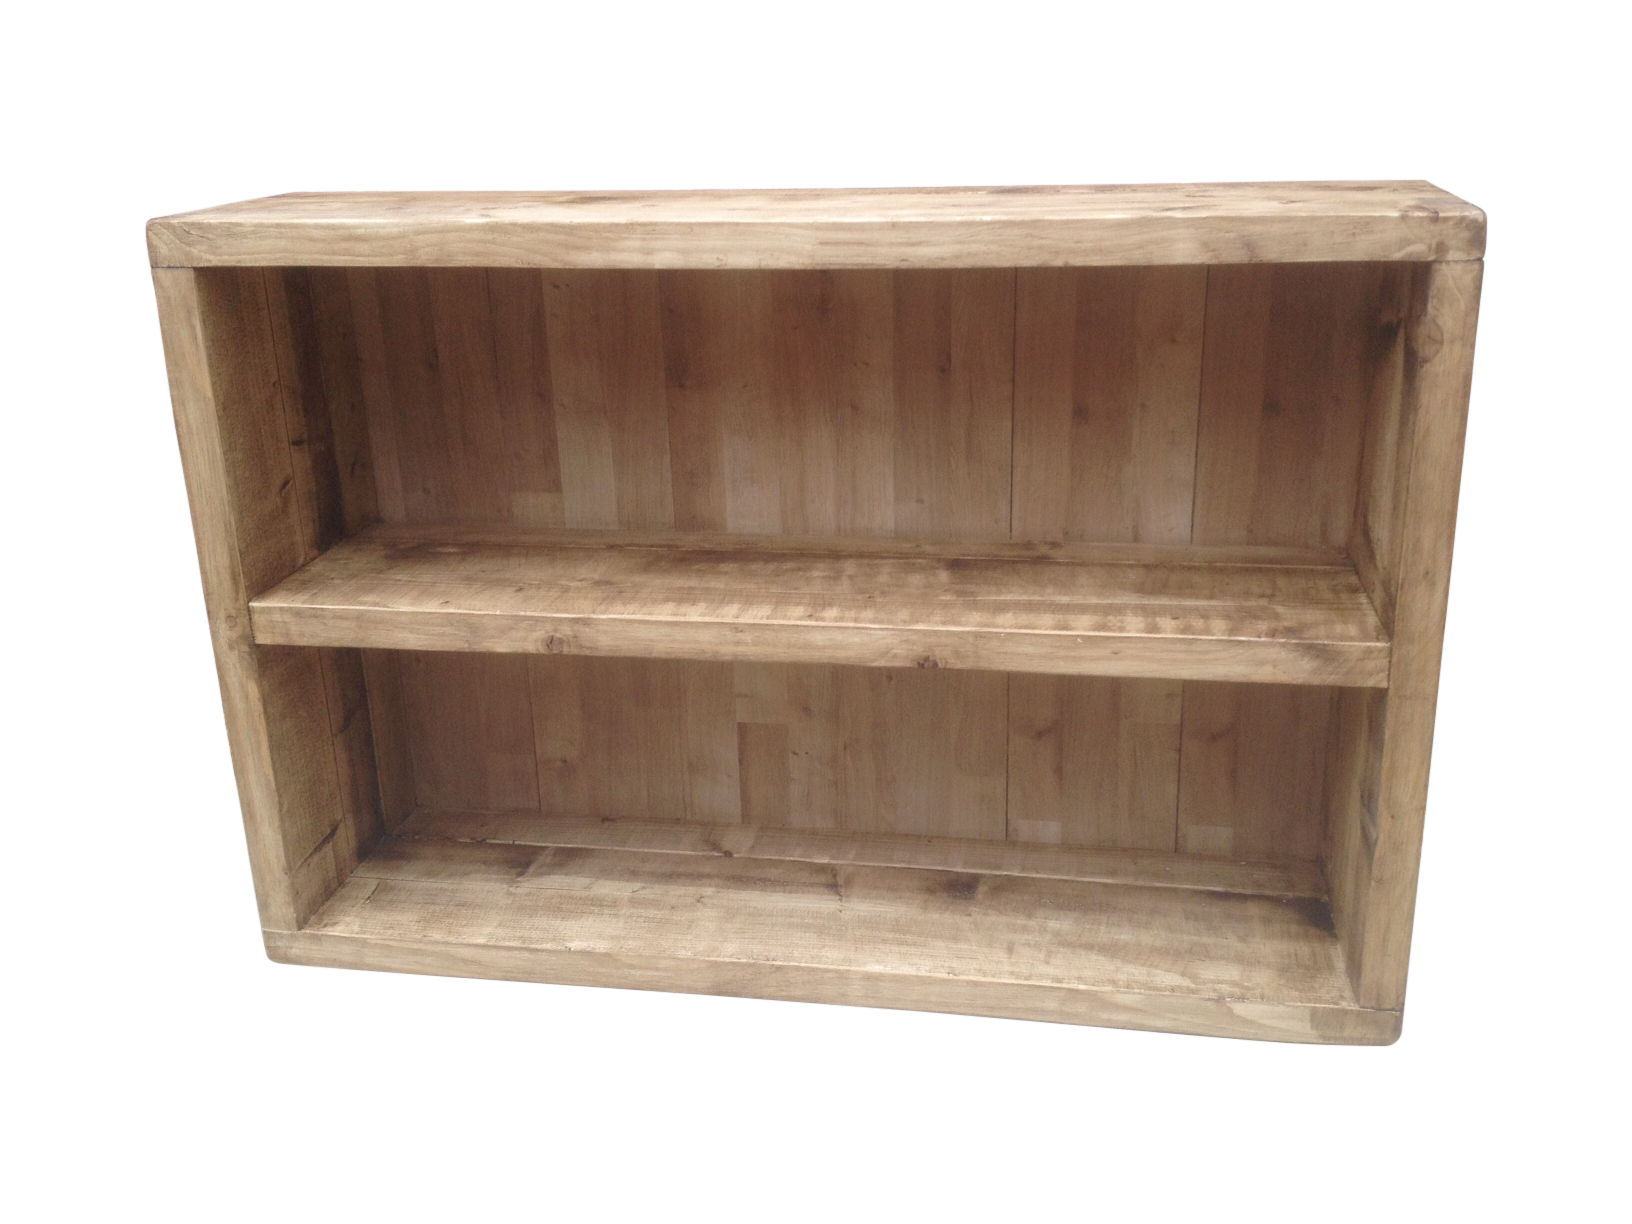 The Low Rustic Bookcase